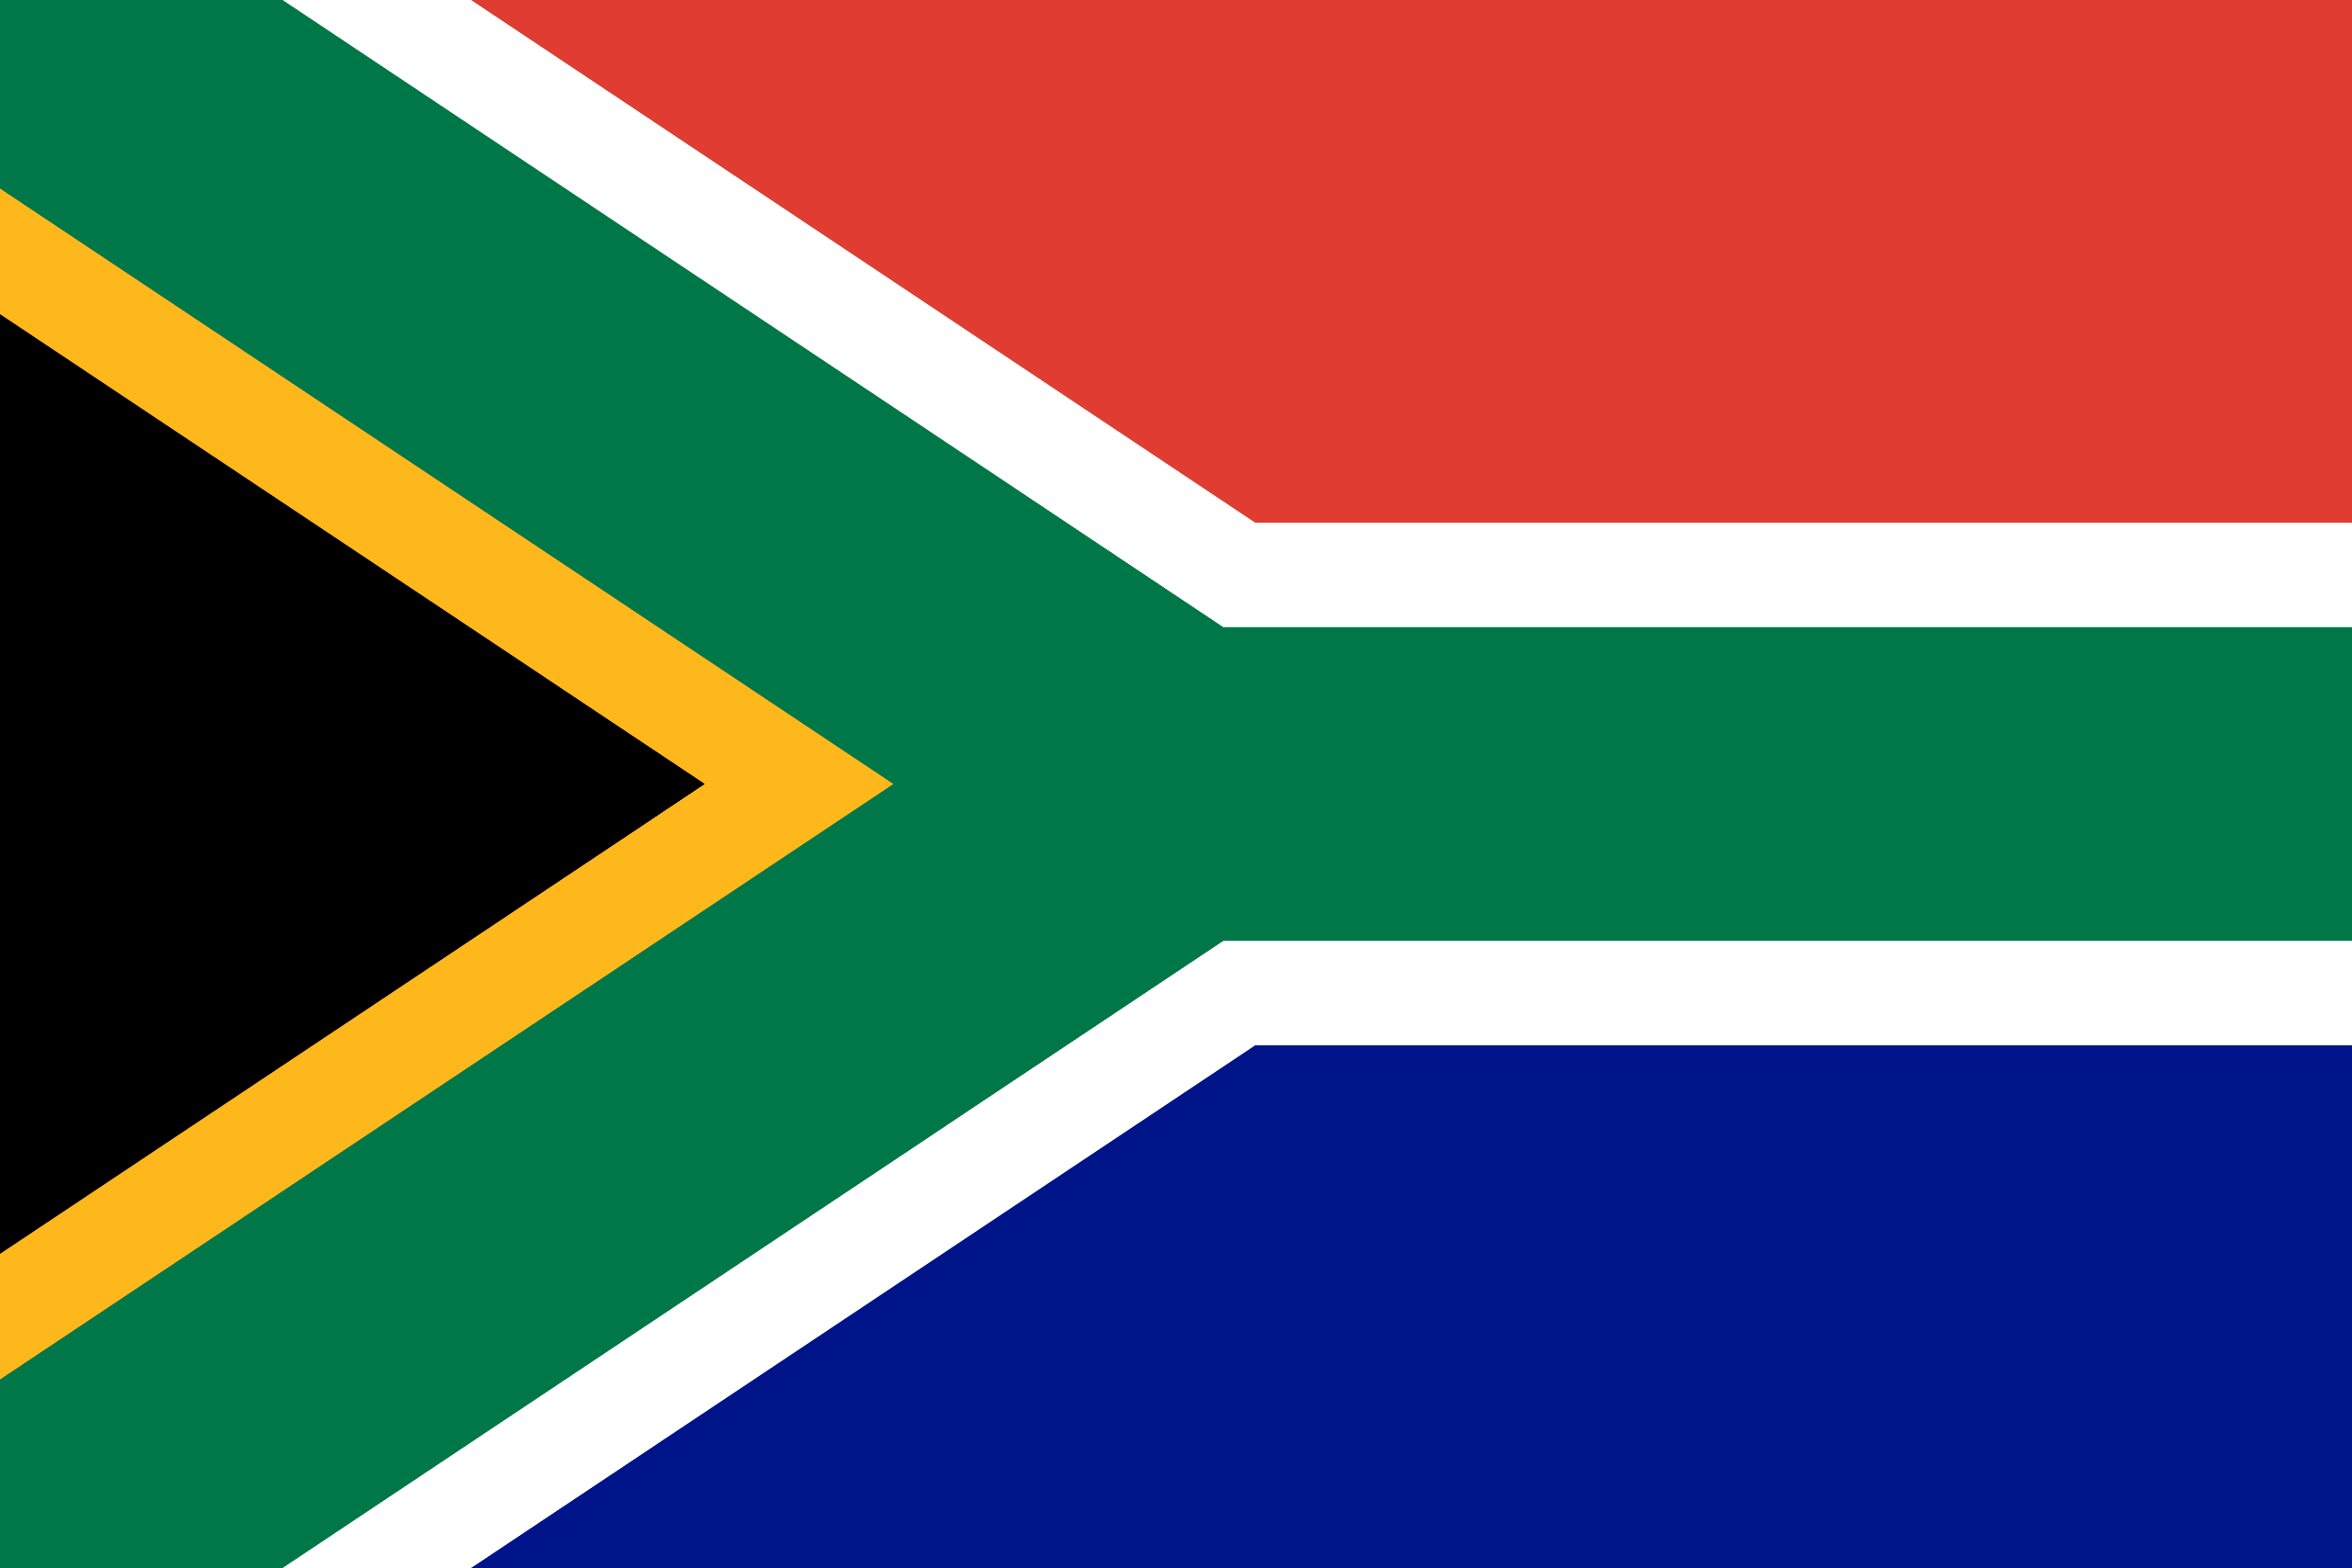 Flag Of South Africa Image Amp Brief History Of The Flag